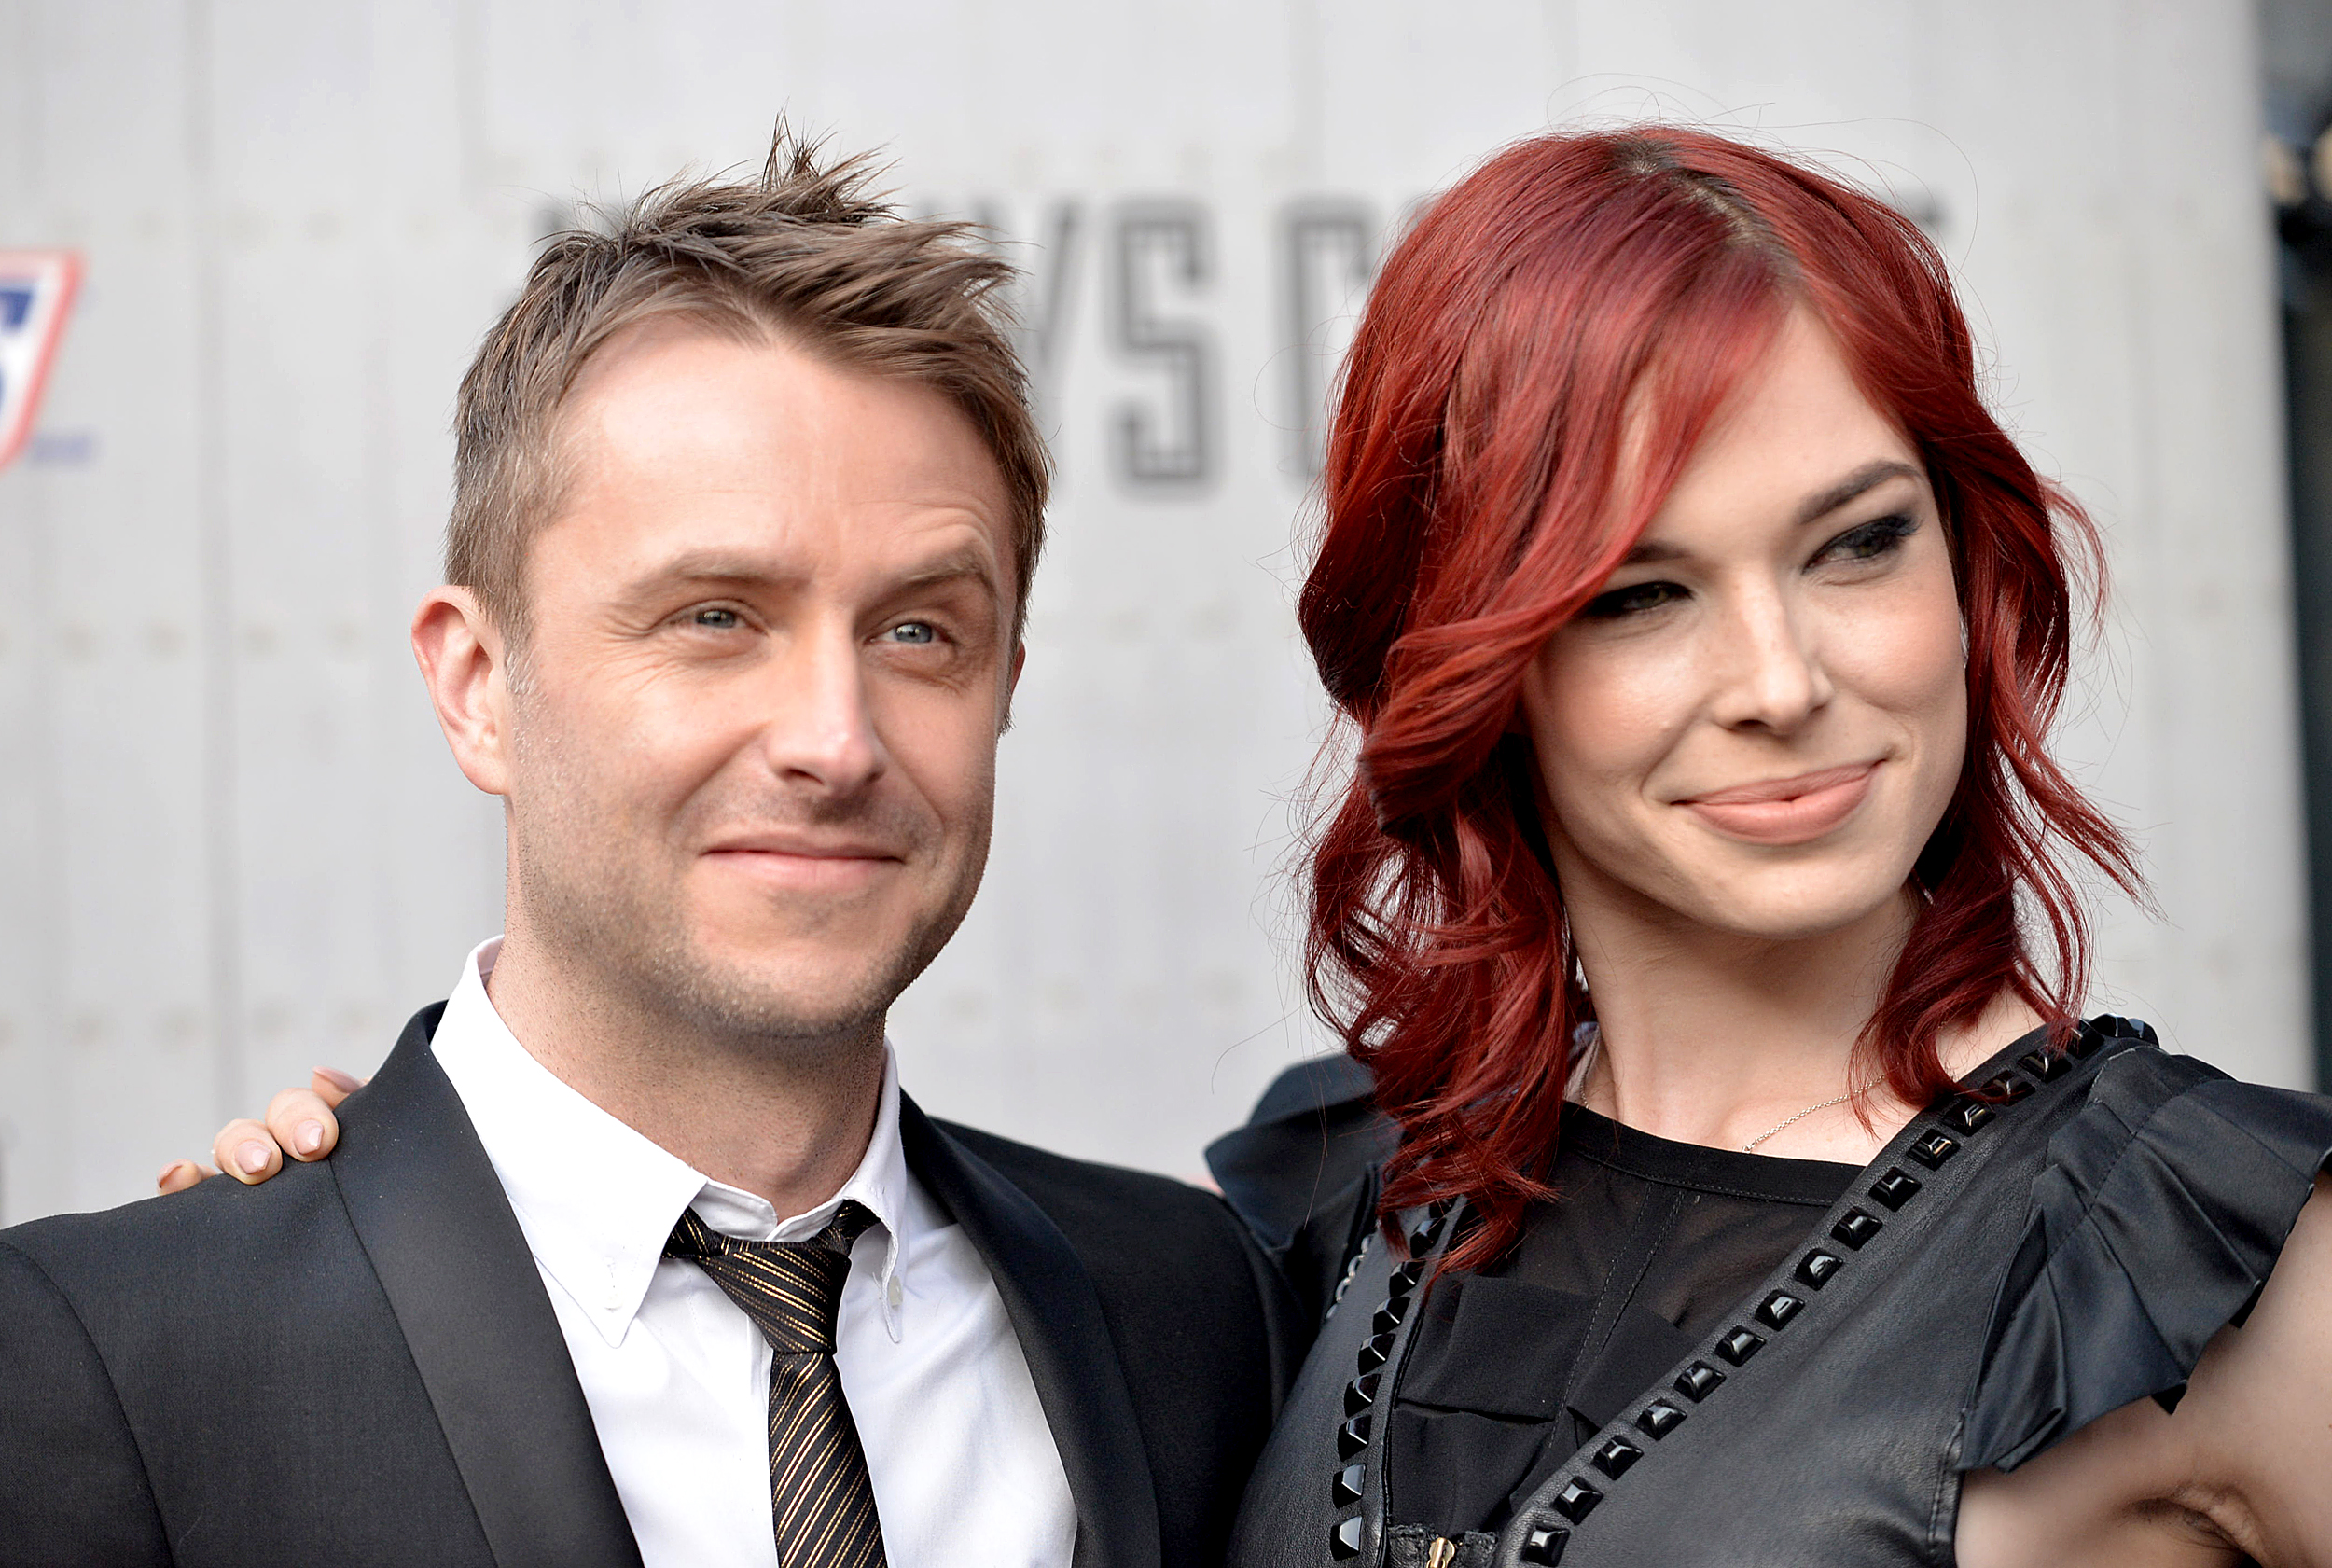 AMC Networks halts Chris Hardwick's show while investigating abuse allegations